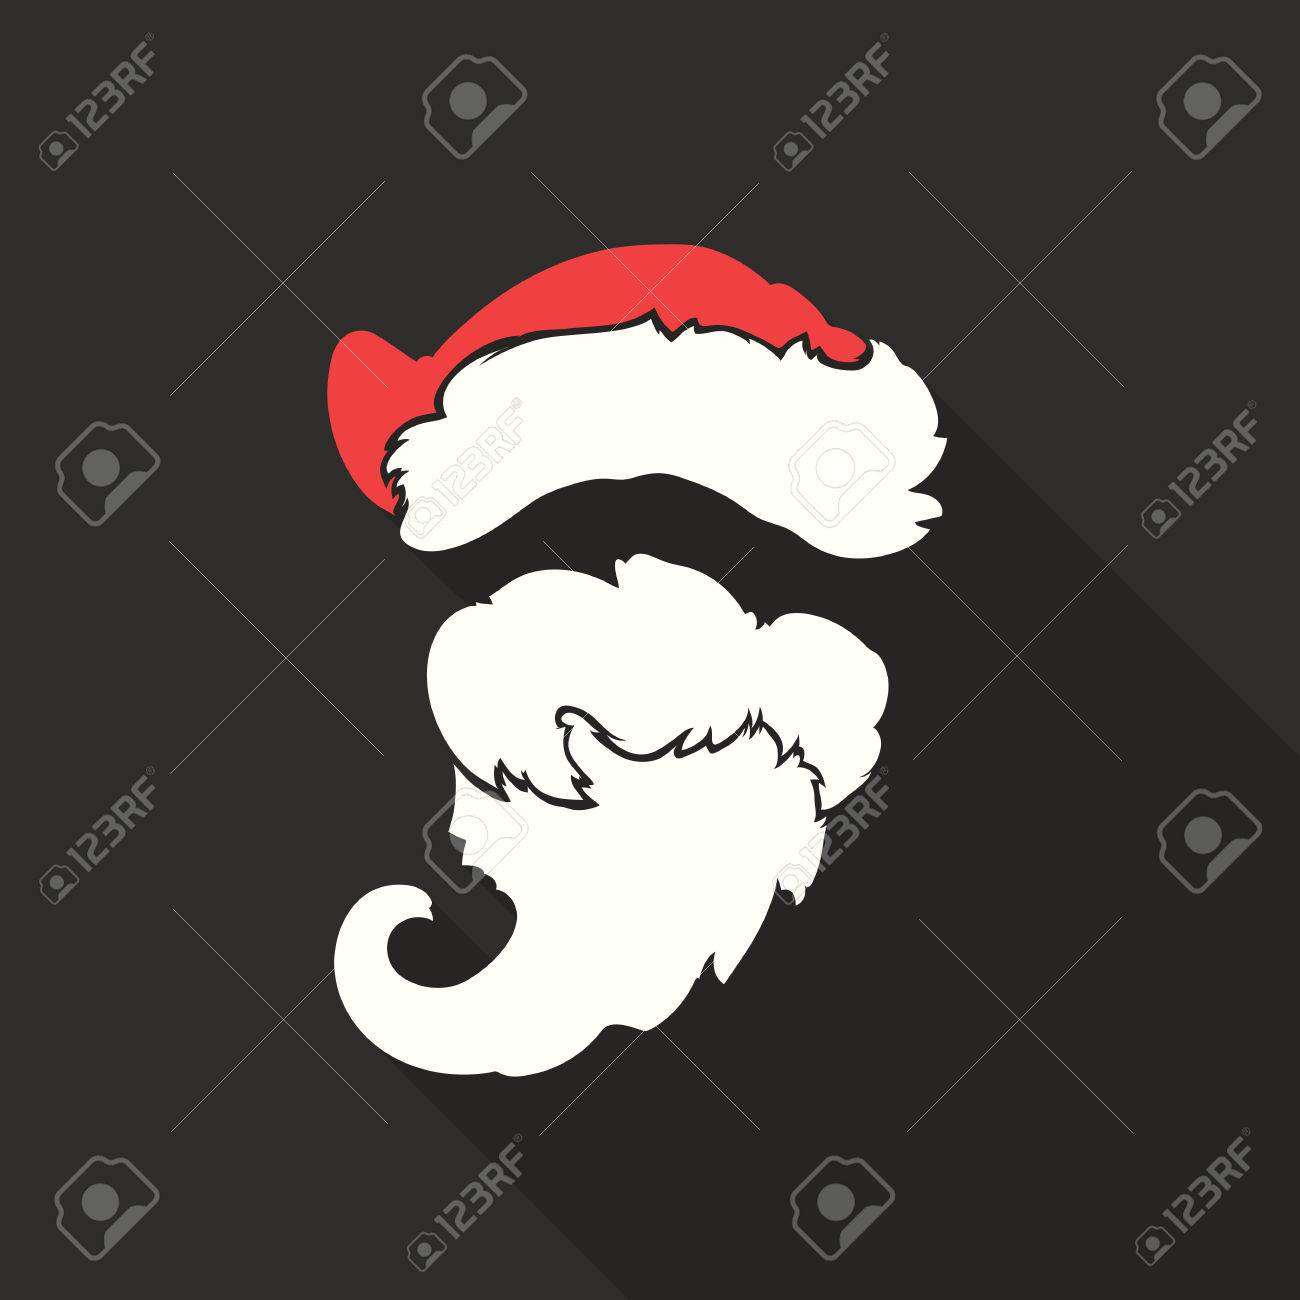 7d5ecb722d1 Flat Design Vector Santa Claus Face. Hat and beard. Christmas icons with  long shadow